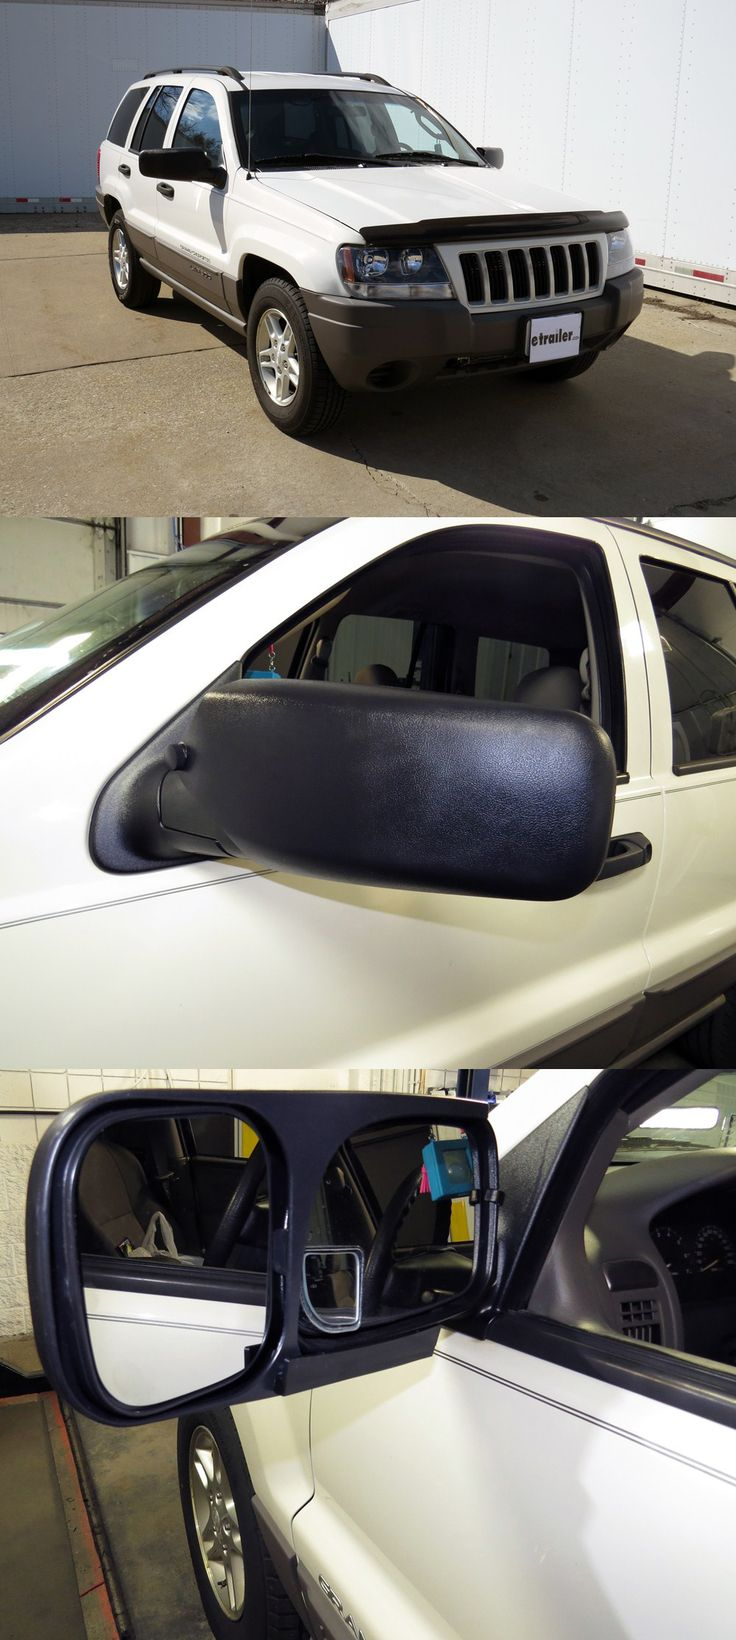 Longview custom towing mirrors for the jeep grand cherokee slip on mirrors that provide additional